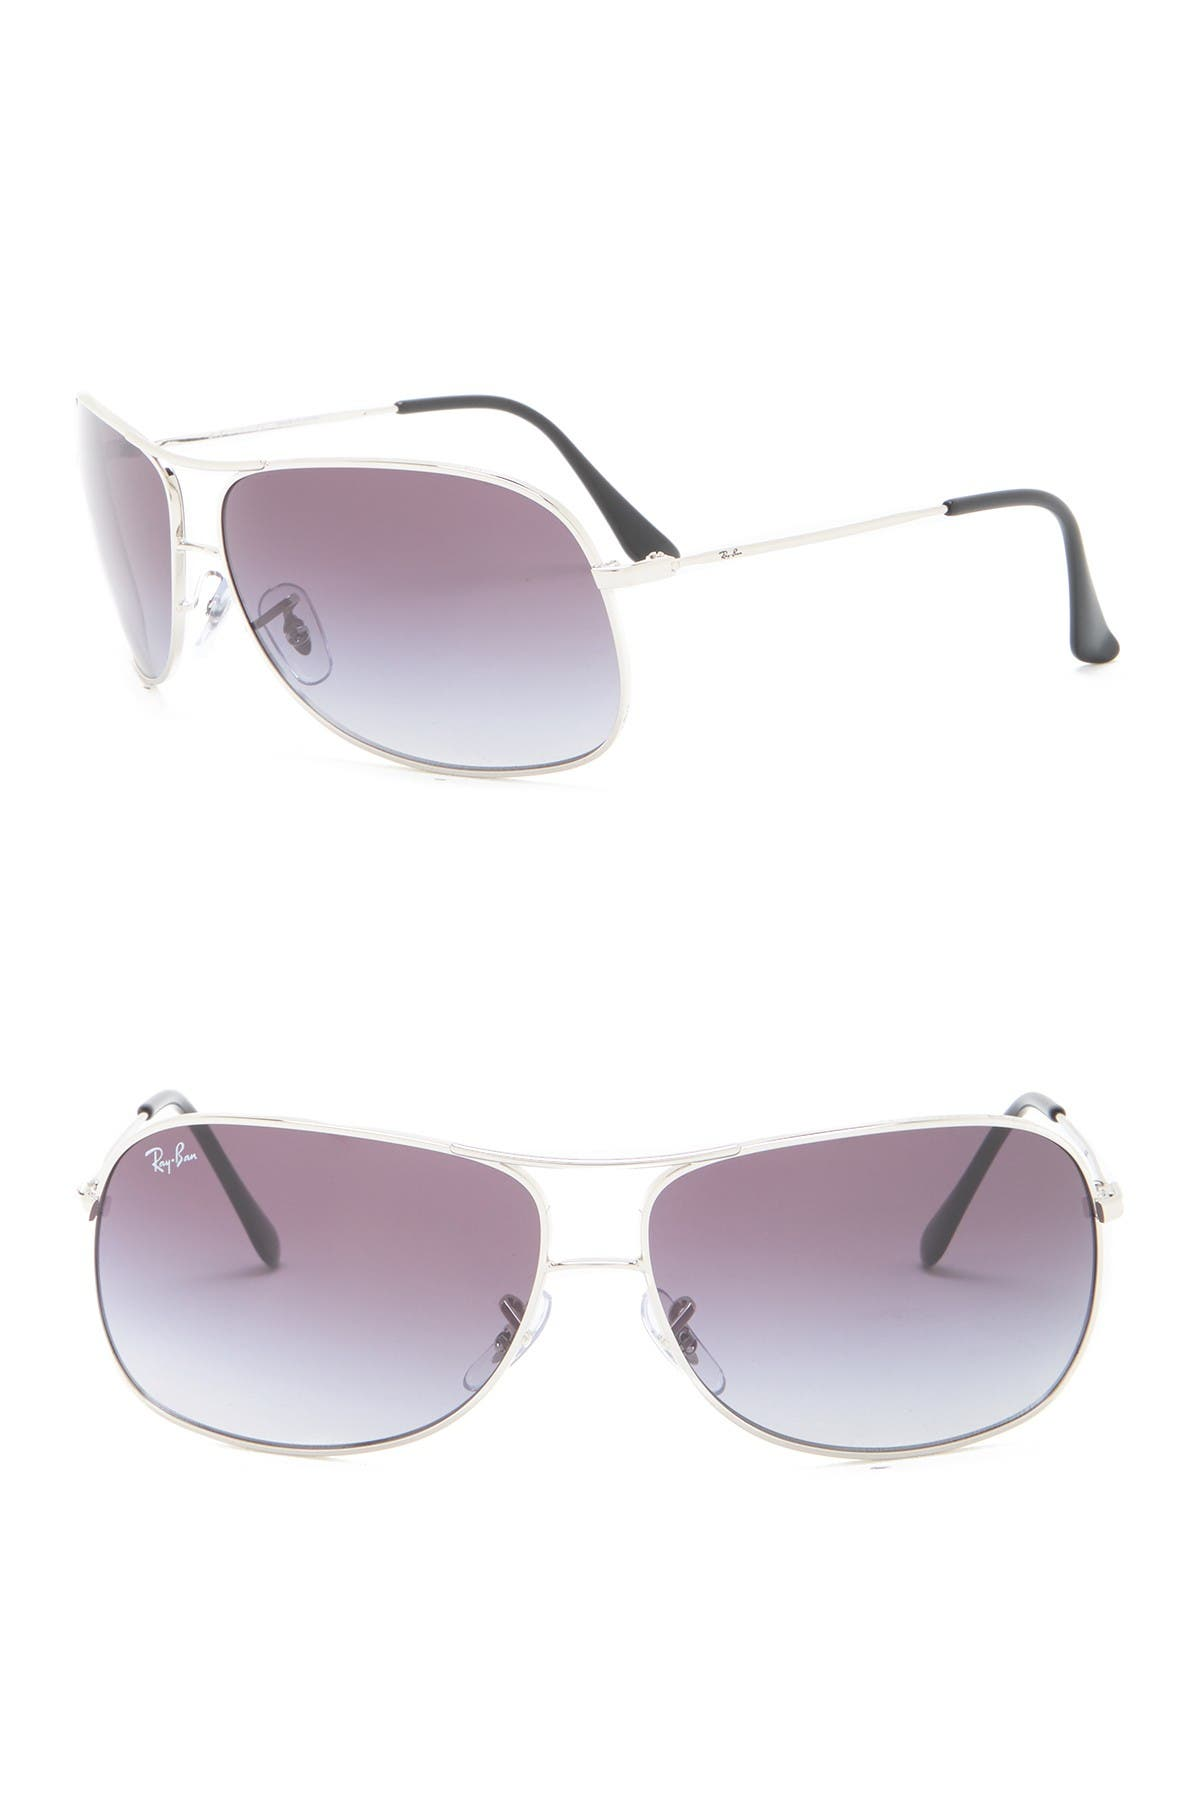 Image of Ray-Ban 64mm Aviator Sunglasses